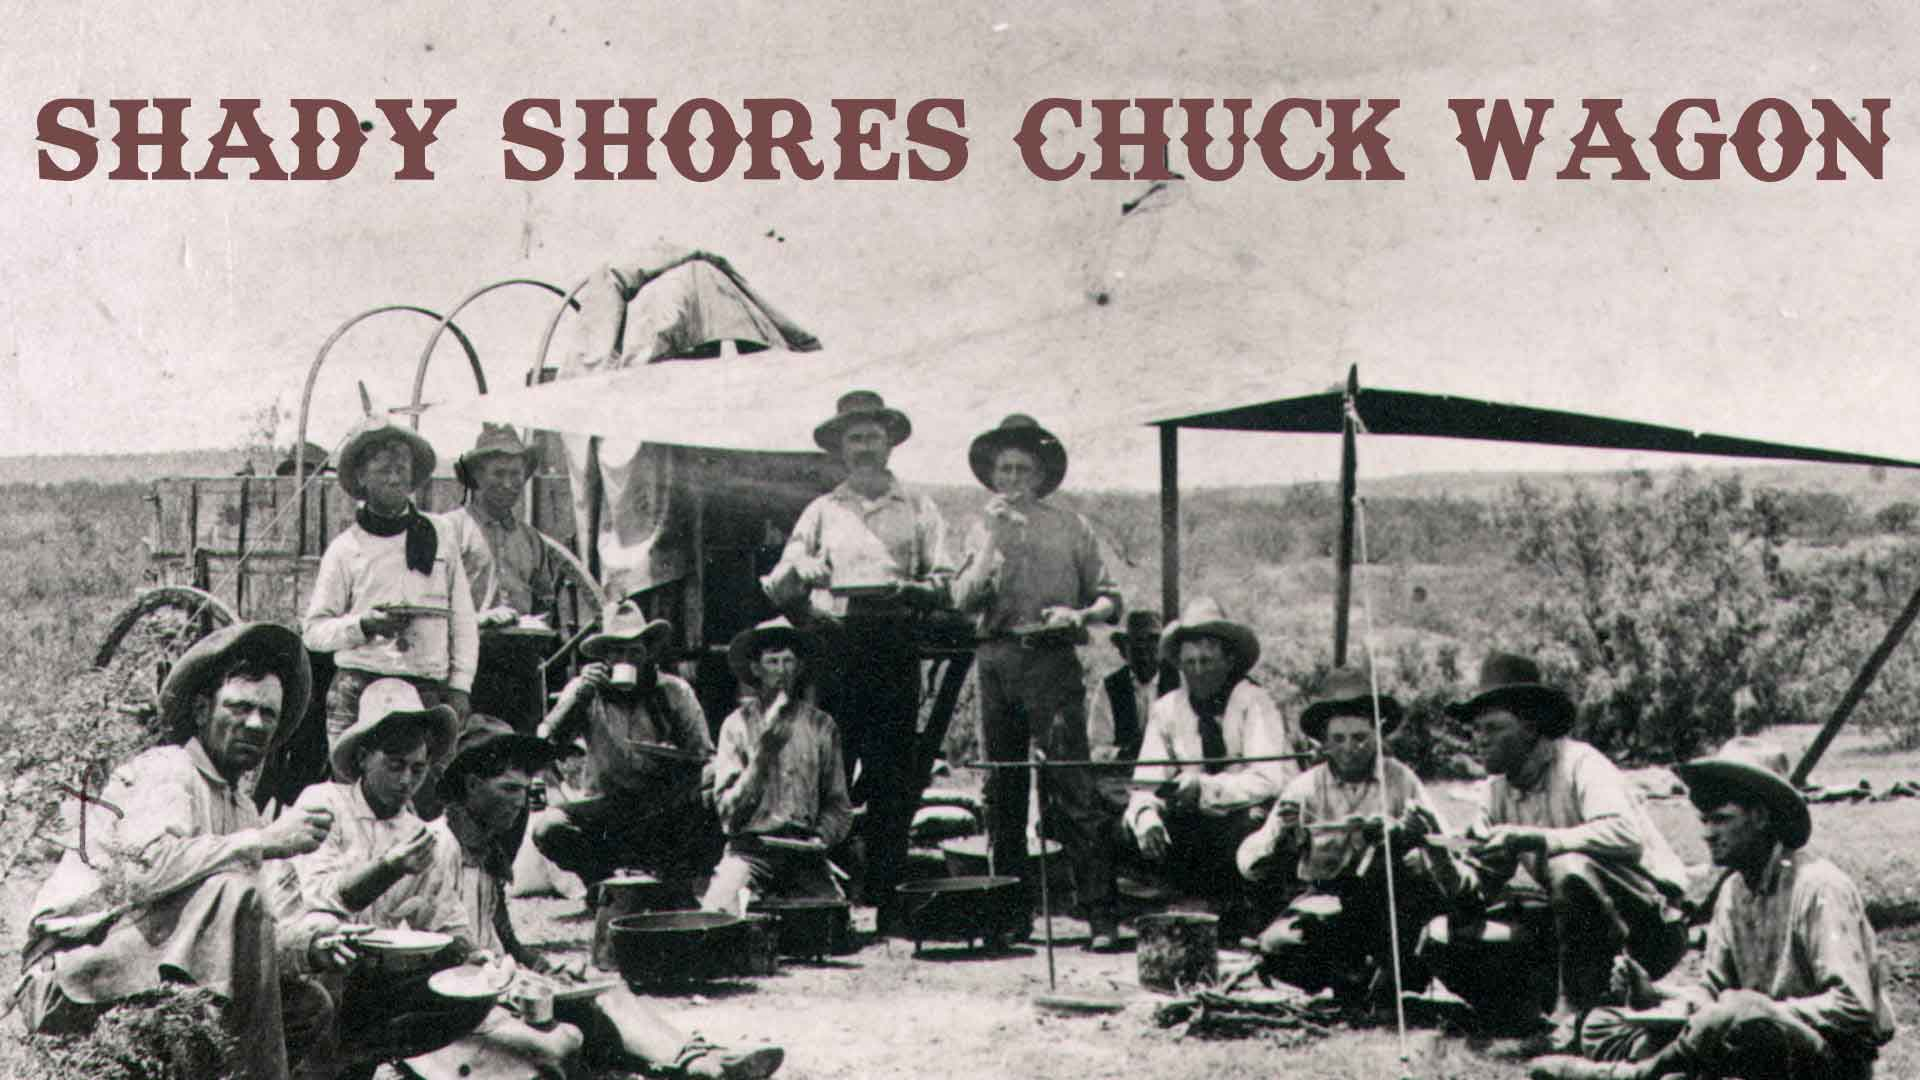 Event photo for Shady Shores Chuck Wagon dinner